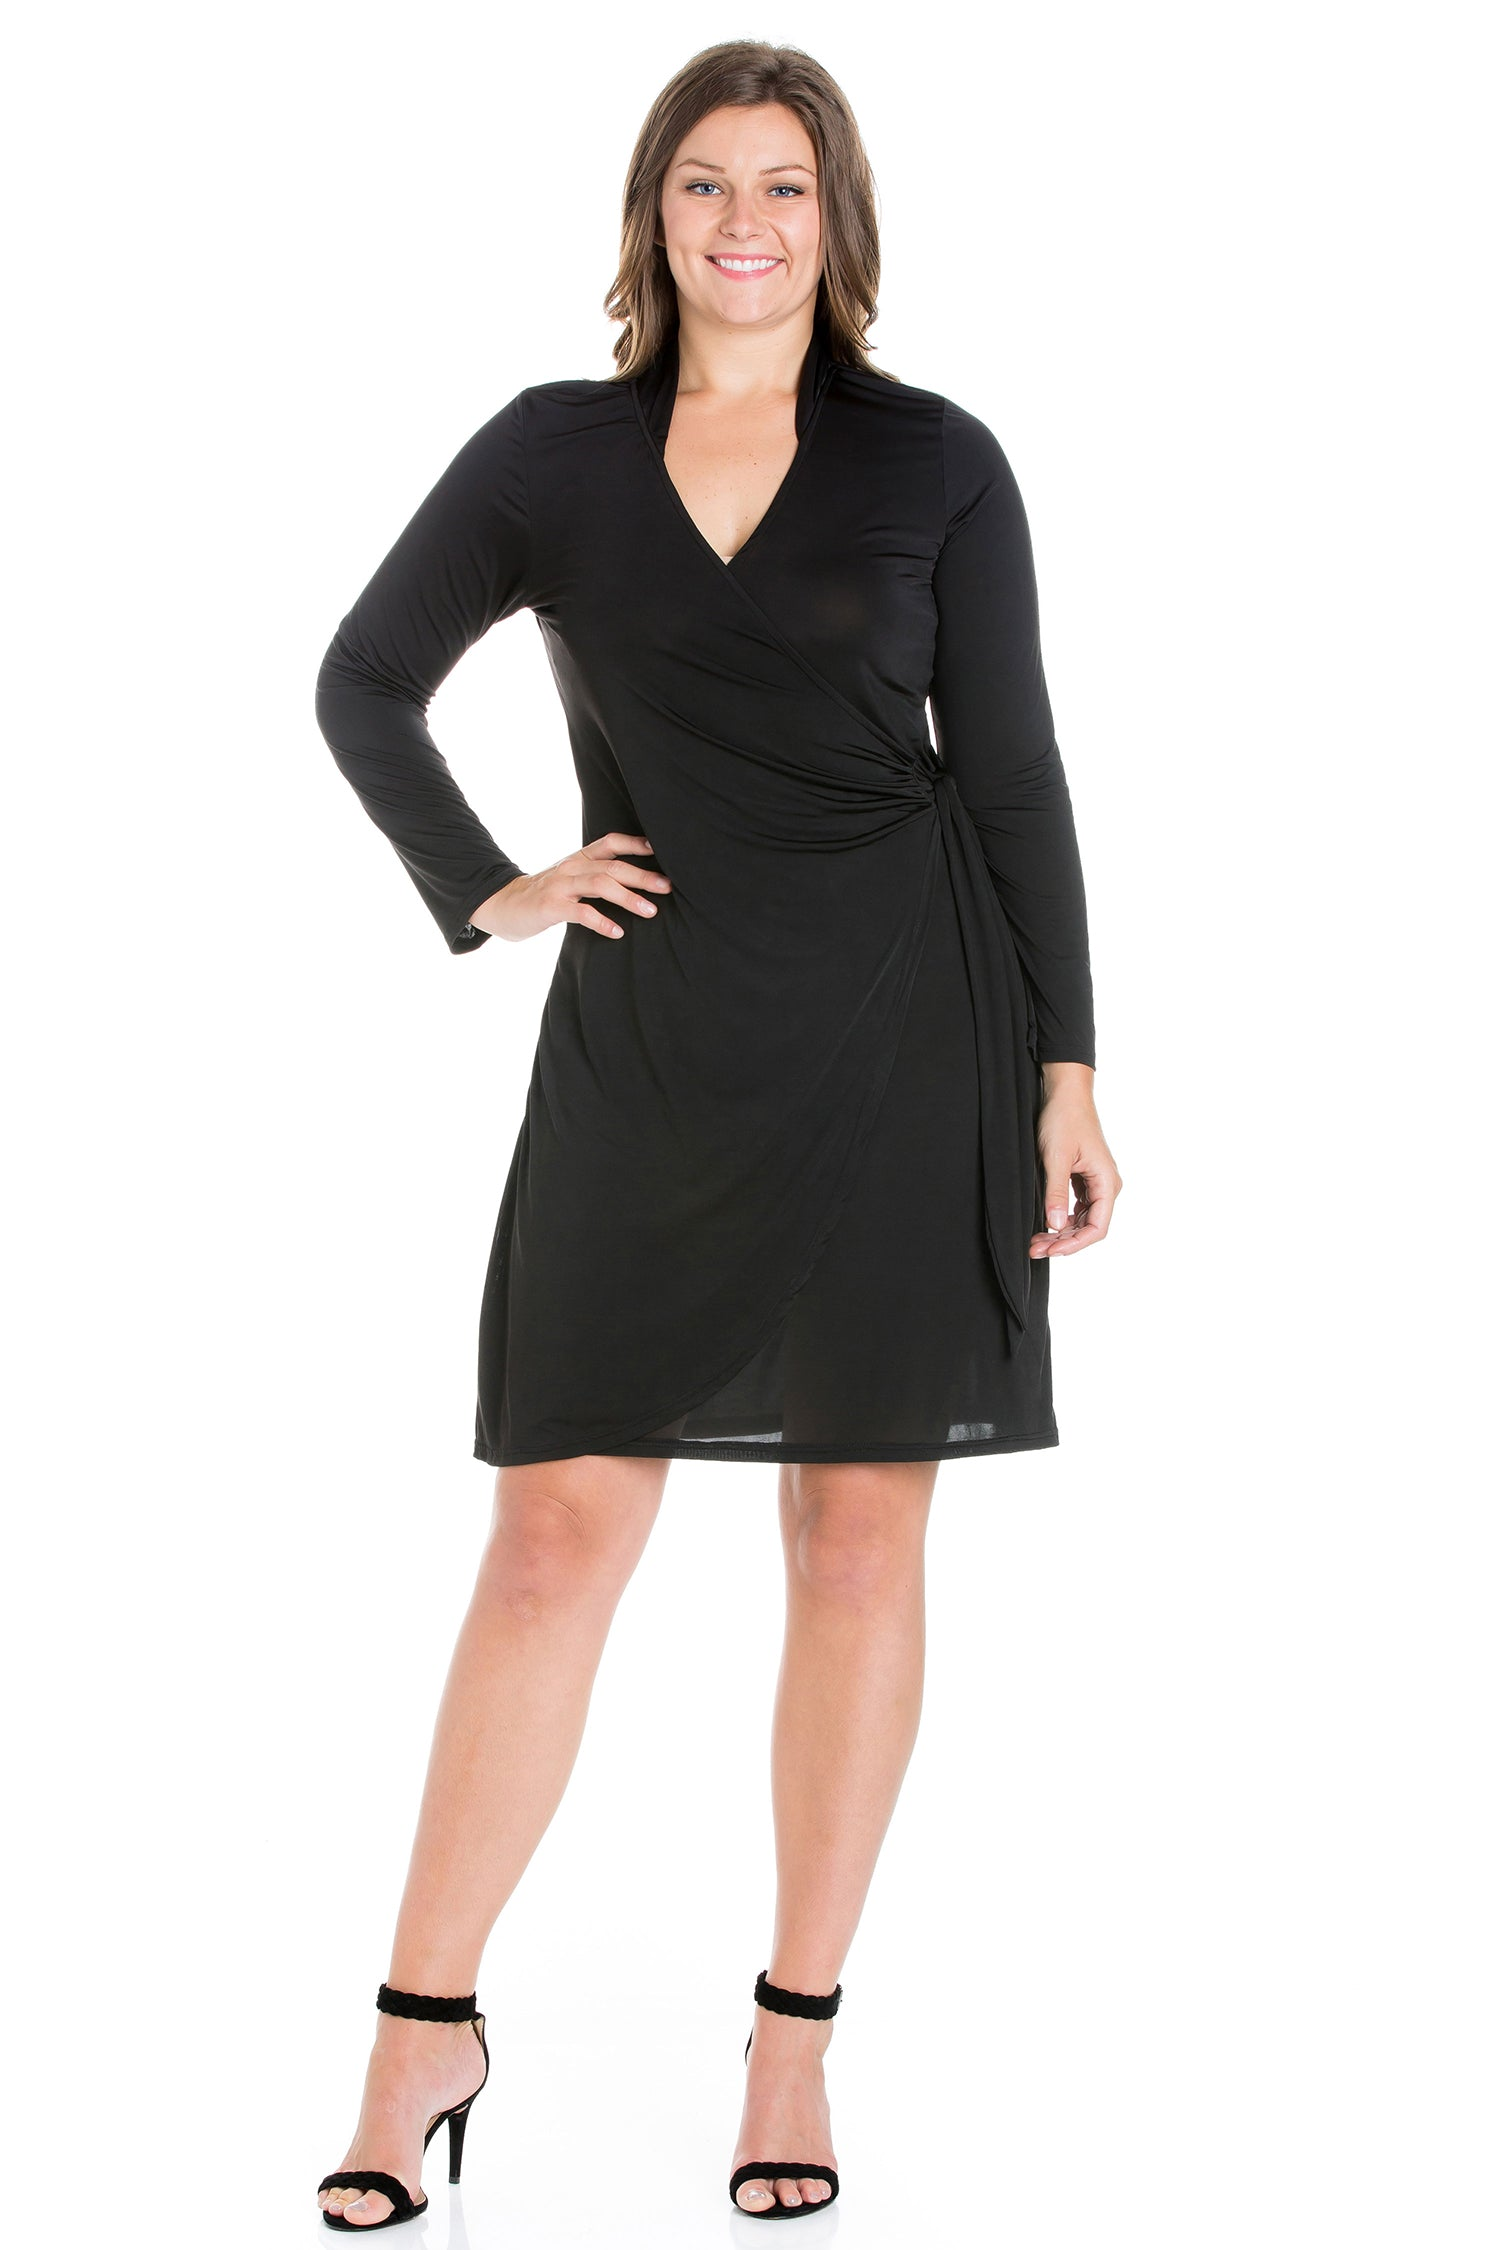 24seven Comfort Apparel Plus Size Long Sleeve V Neck Mini Wrap Dress-DRESSES-24Seven Comfort Apparel-BLACK-1X-24/7 Comfort Apparel